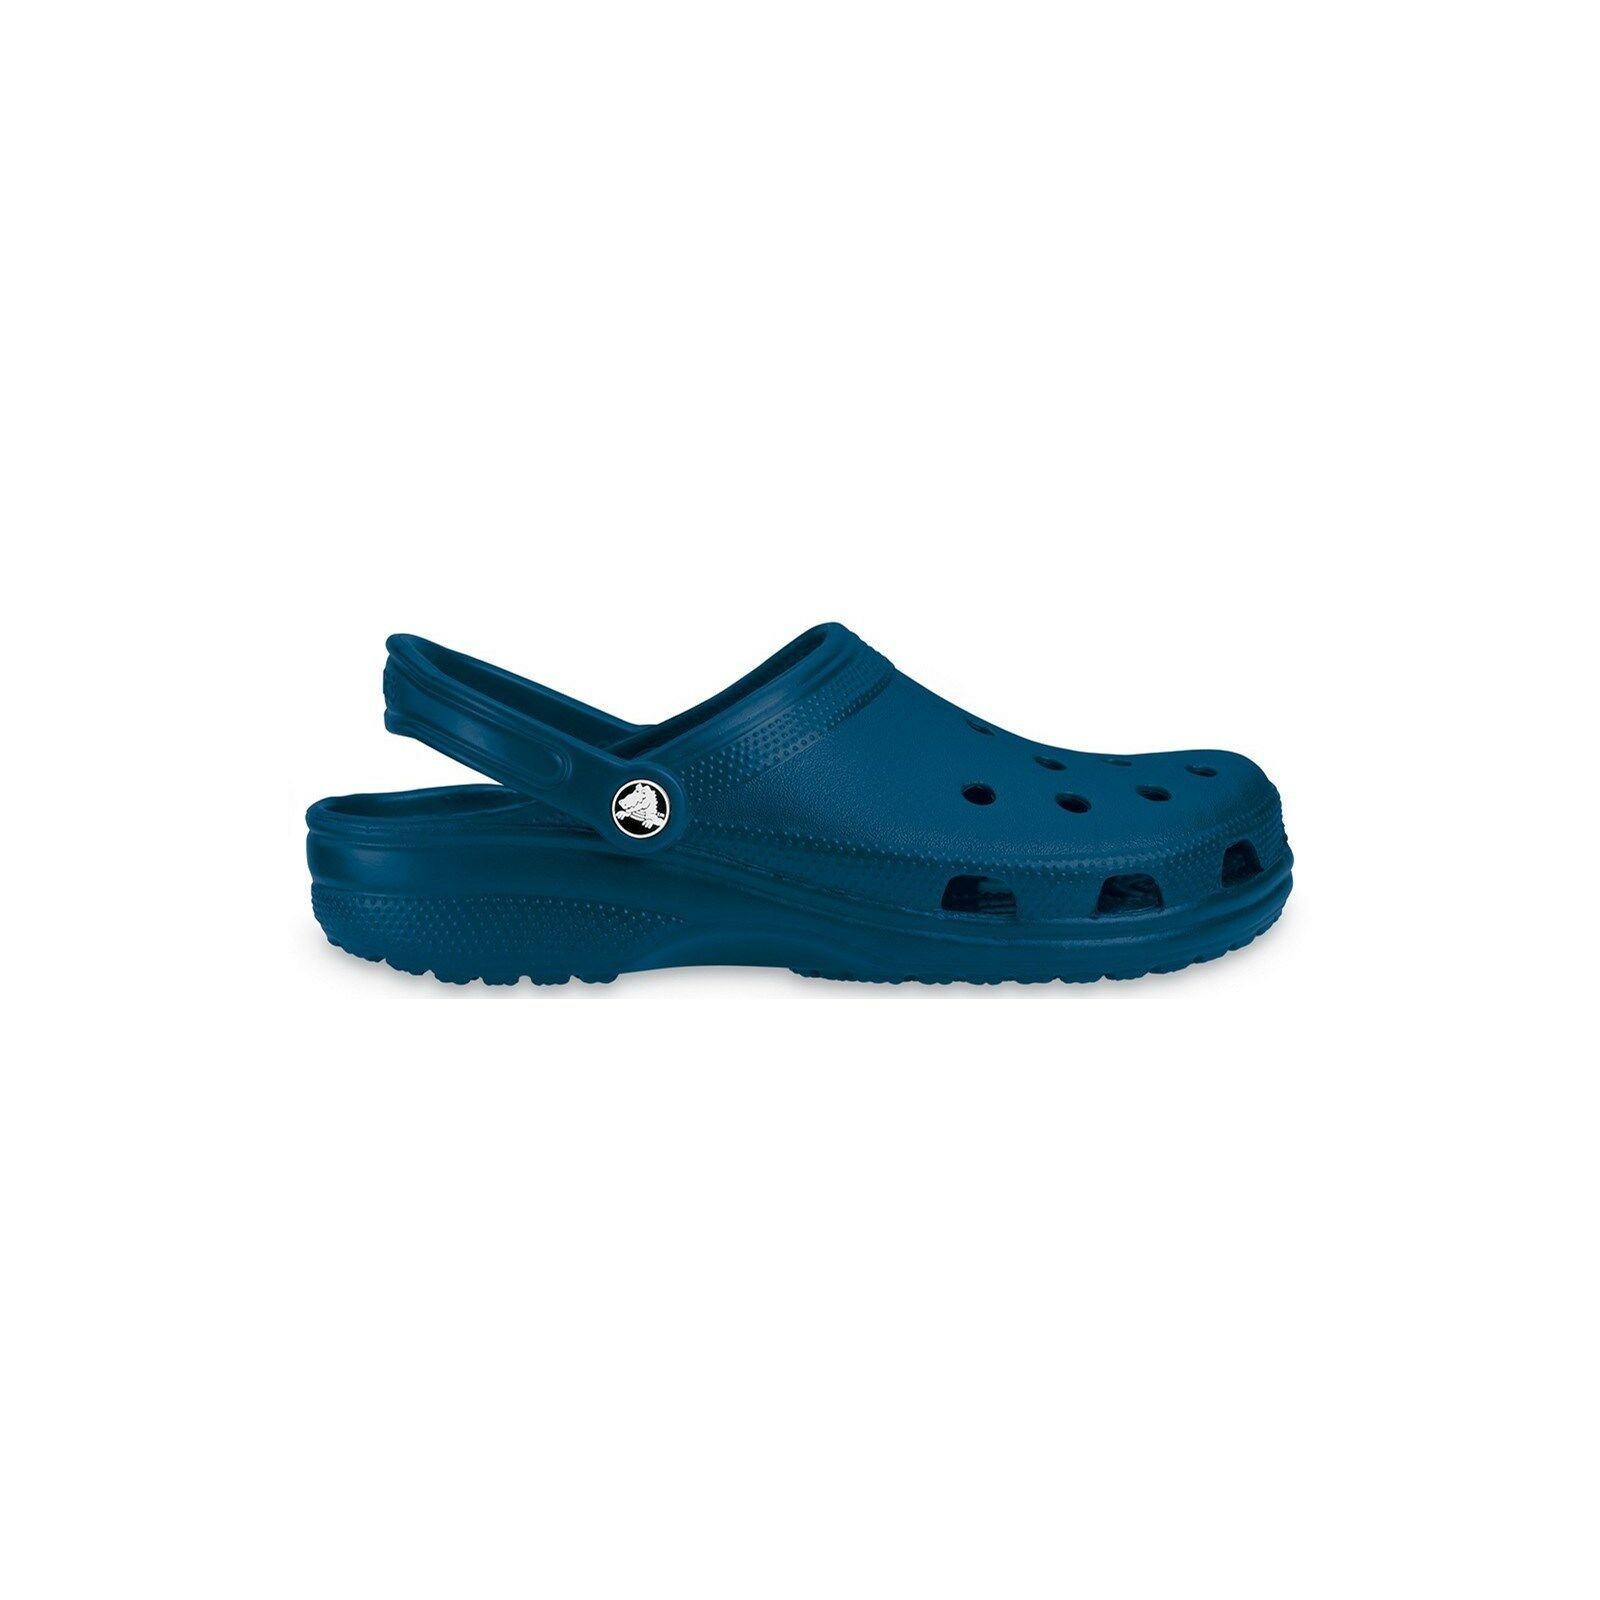 17fa5a178 Crocs Classic Cayman 10001-410 Navy Mens US Size 4 Womens 6 for sale online